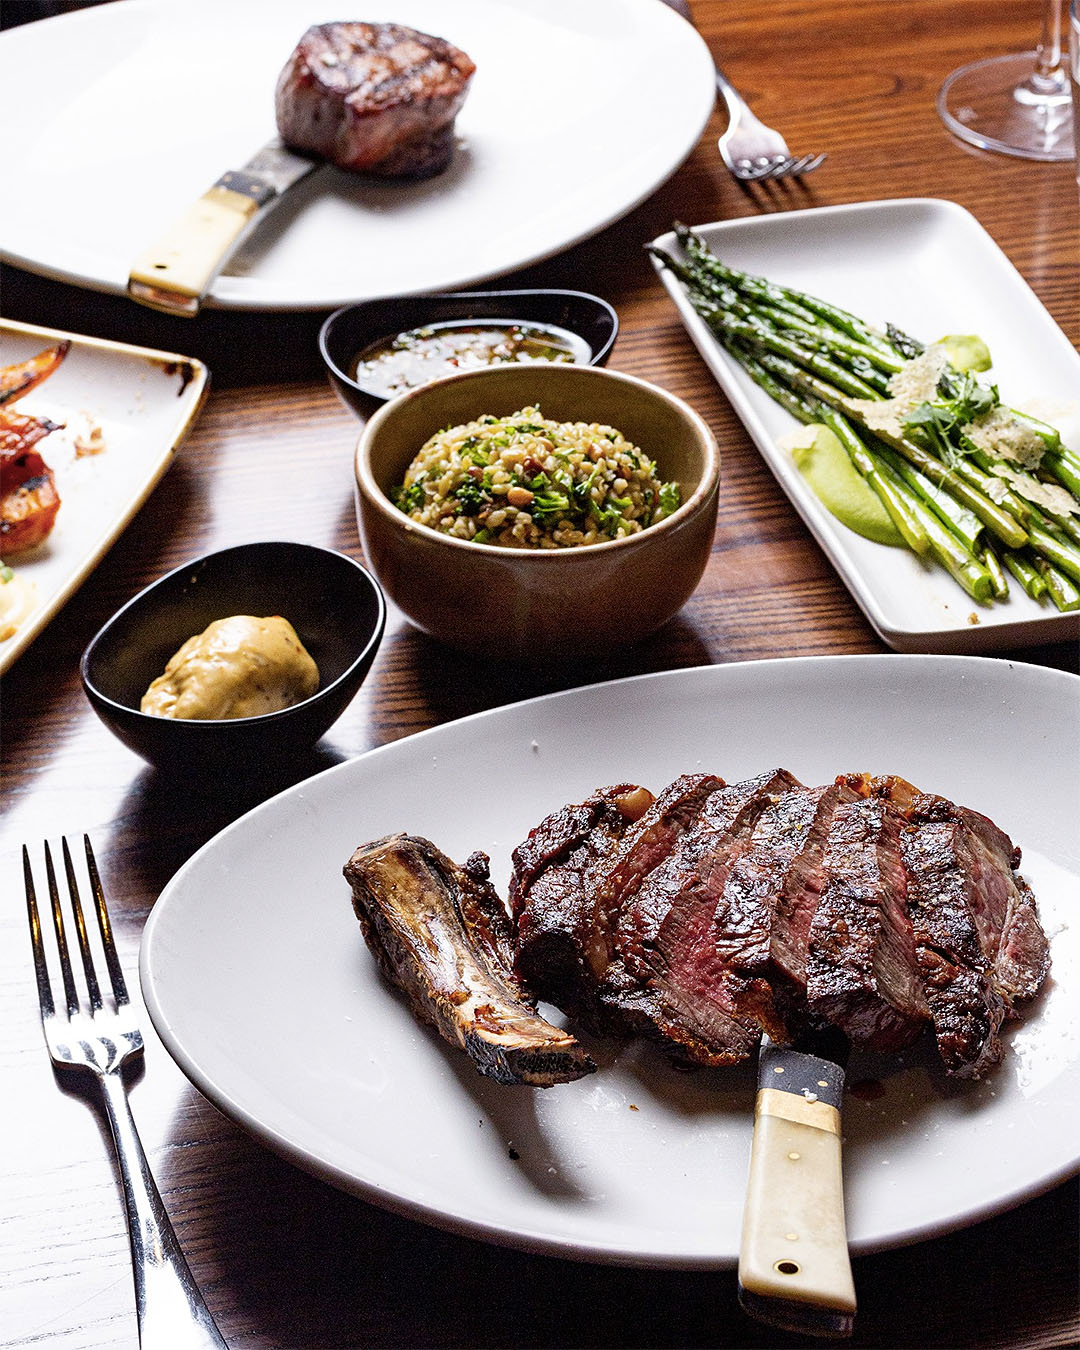 A good looking steak with various sides laid out on the table at Bessie, one of Christchurch's best restaurants.